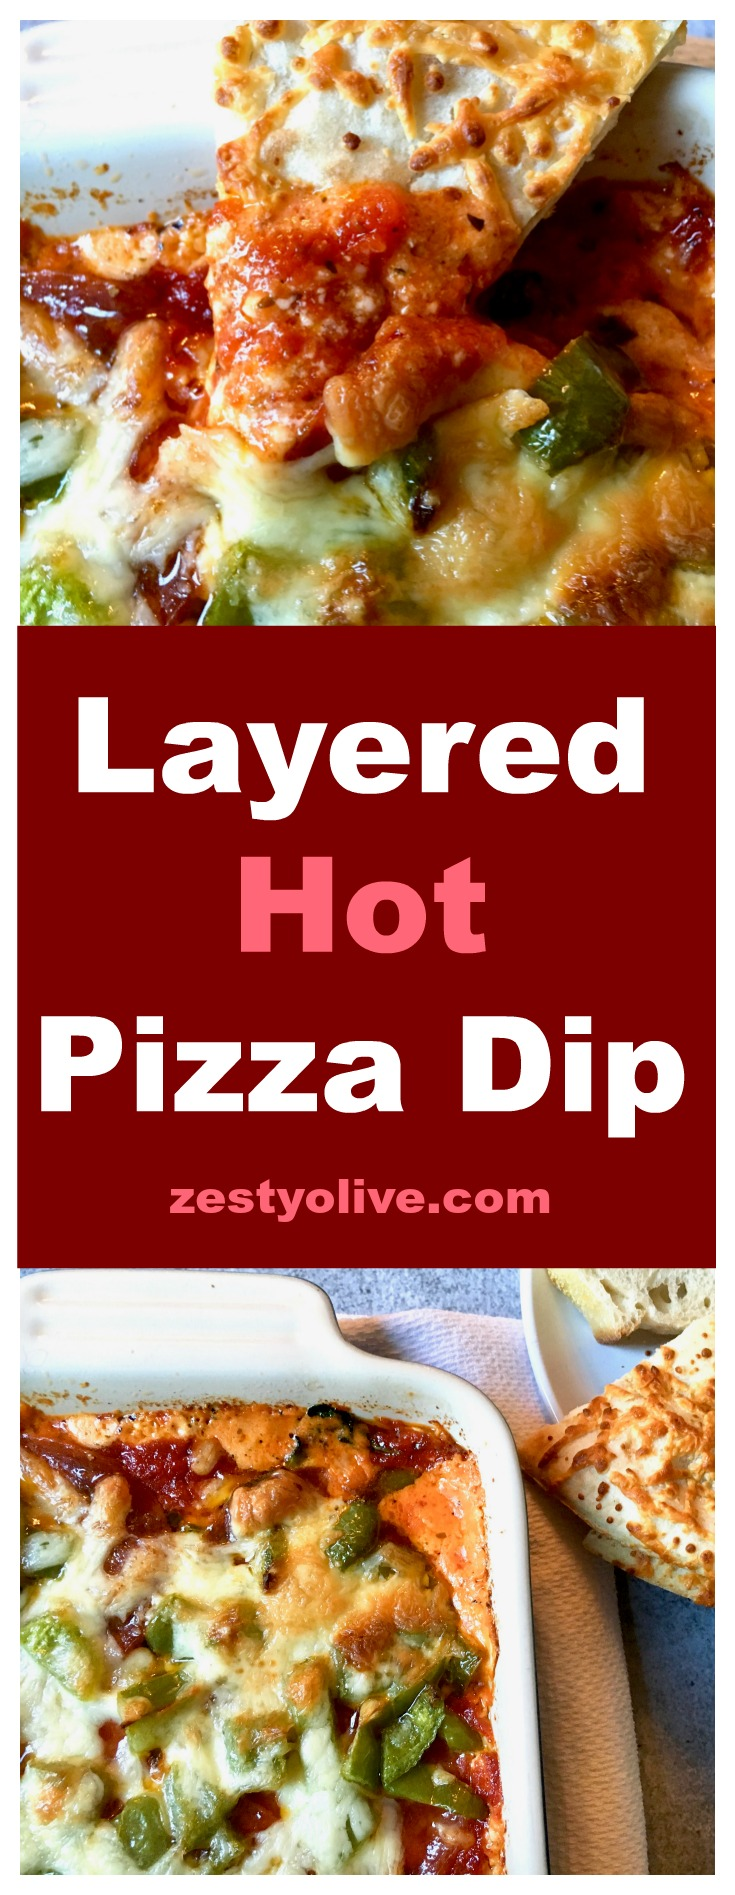 This easy Layered Hot Pizza Dip is perfect for game day parties or anytime you need a cheese fix! Packed with a variety of cheese, veggies and pepperoni, this dip is perfect for Super Bowl parties and beyond.